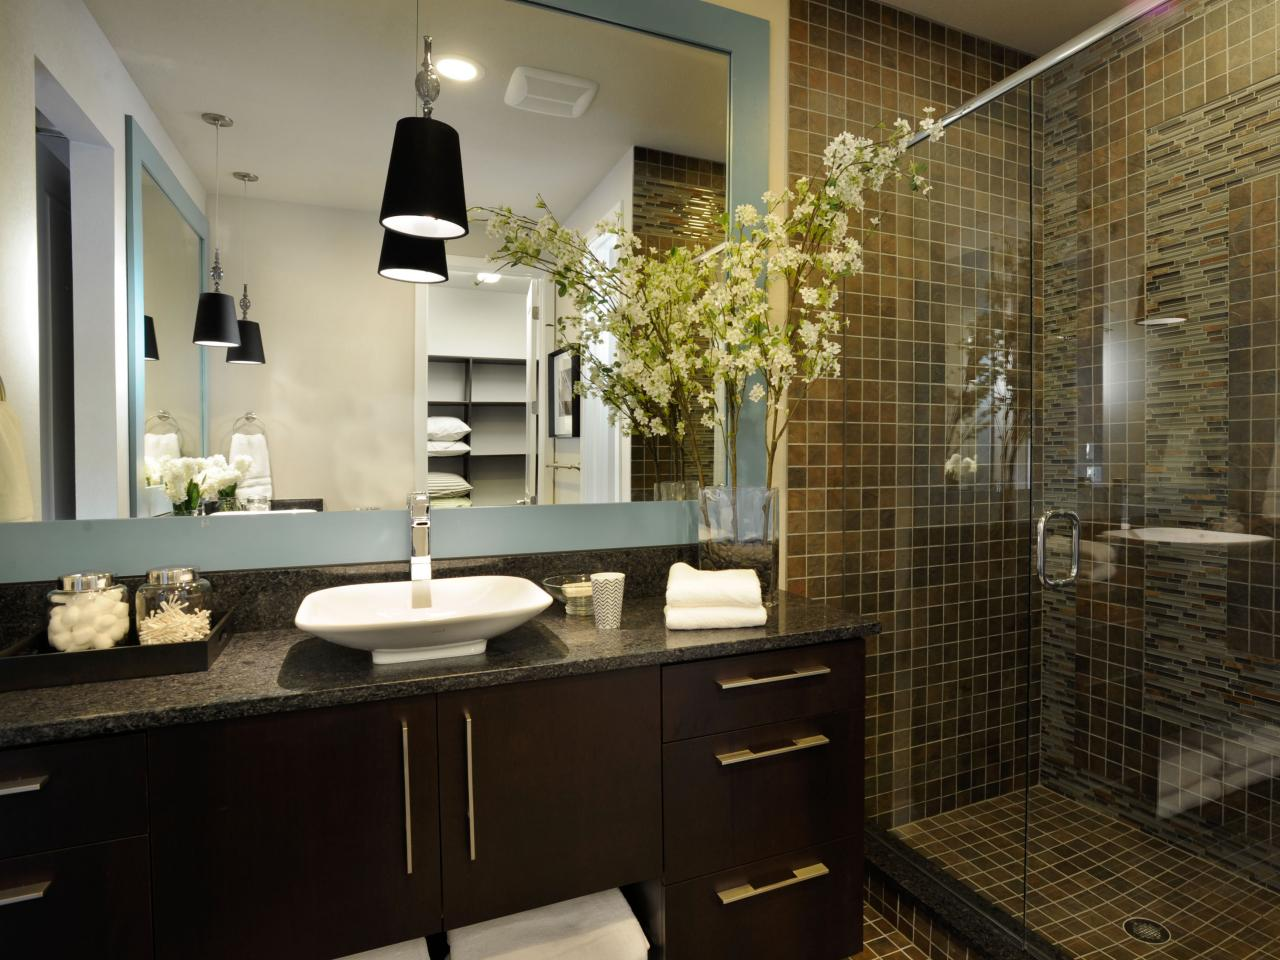 European bathroom design ideas hgtv pictures tips hgtv for Bathroom designs